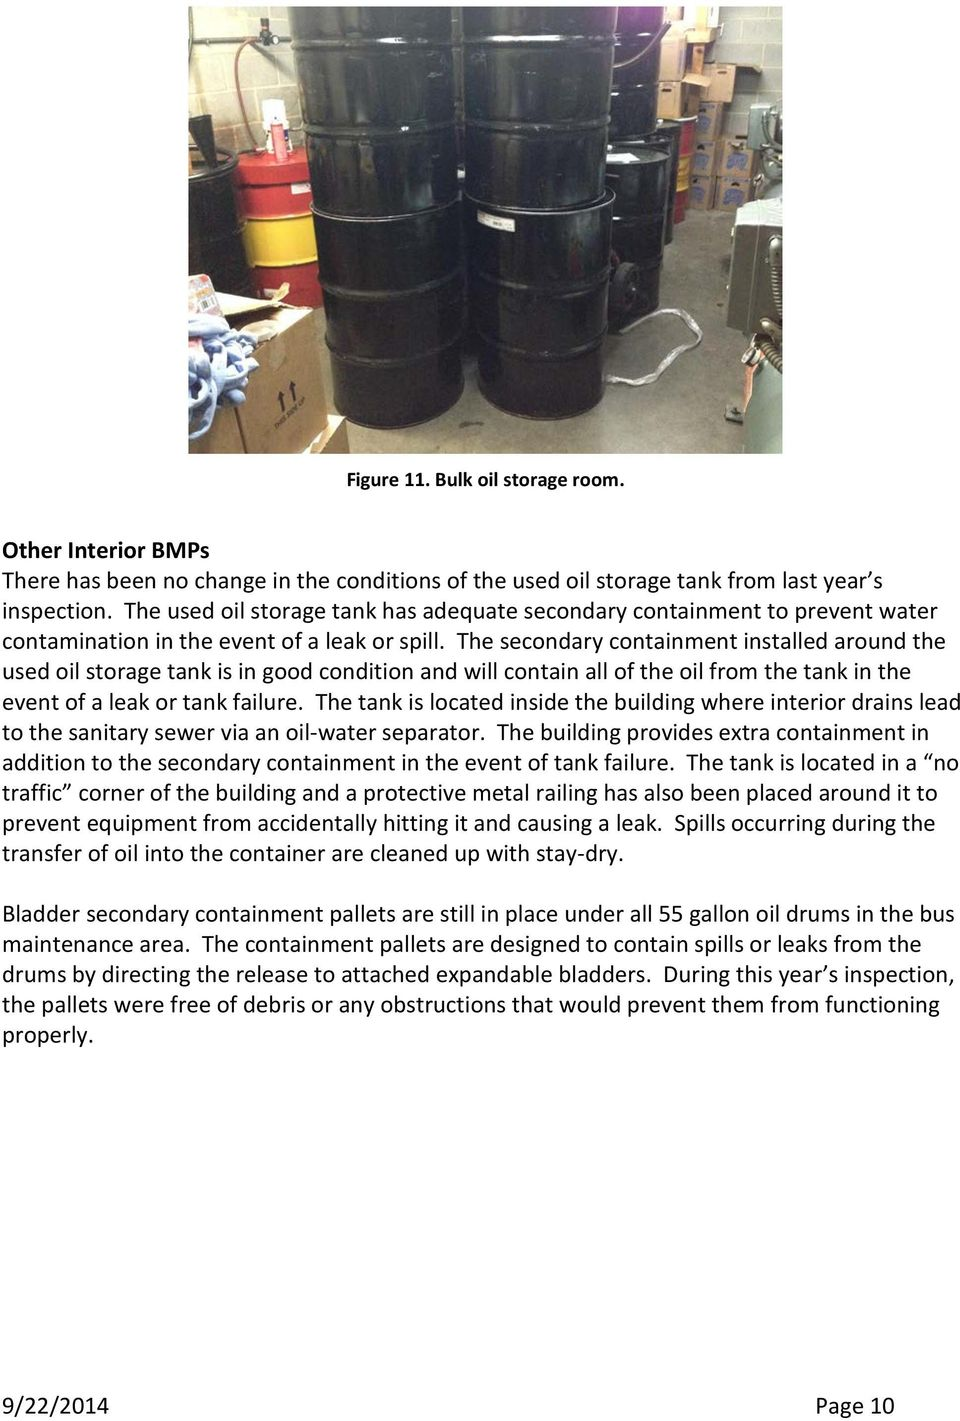 The secondary containment installed around the used oil storage tank is in good condition and will contain all of the oil from the tank in the event of a leak or tank failure.